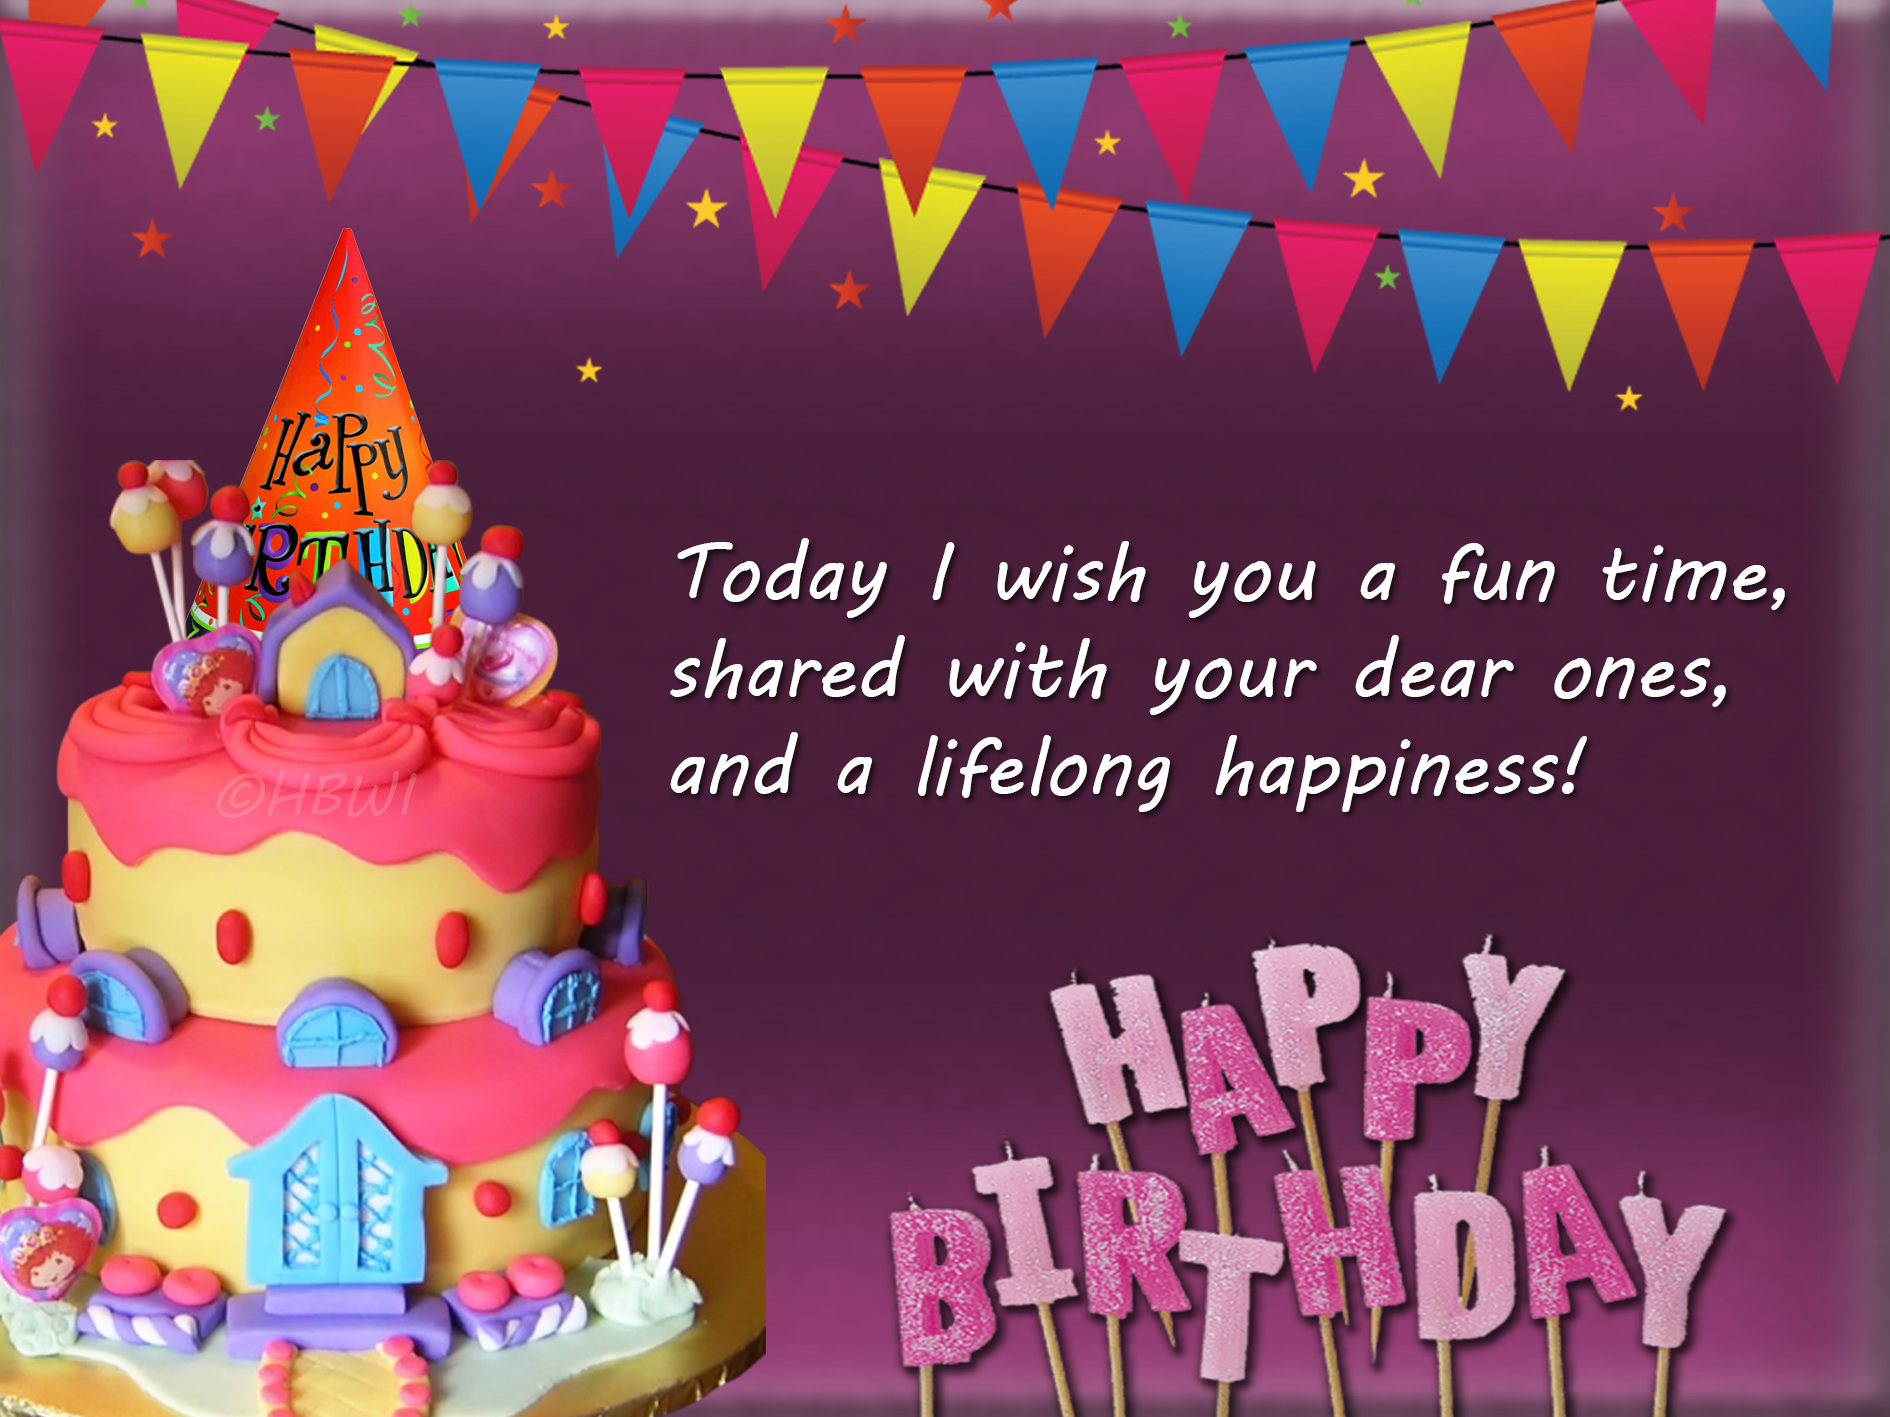 Here Excellent Picture And Grate Hd Quality Birthday Wishes For